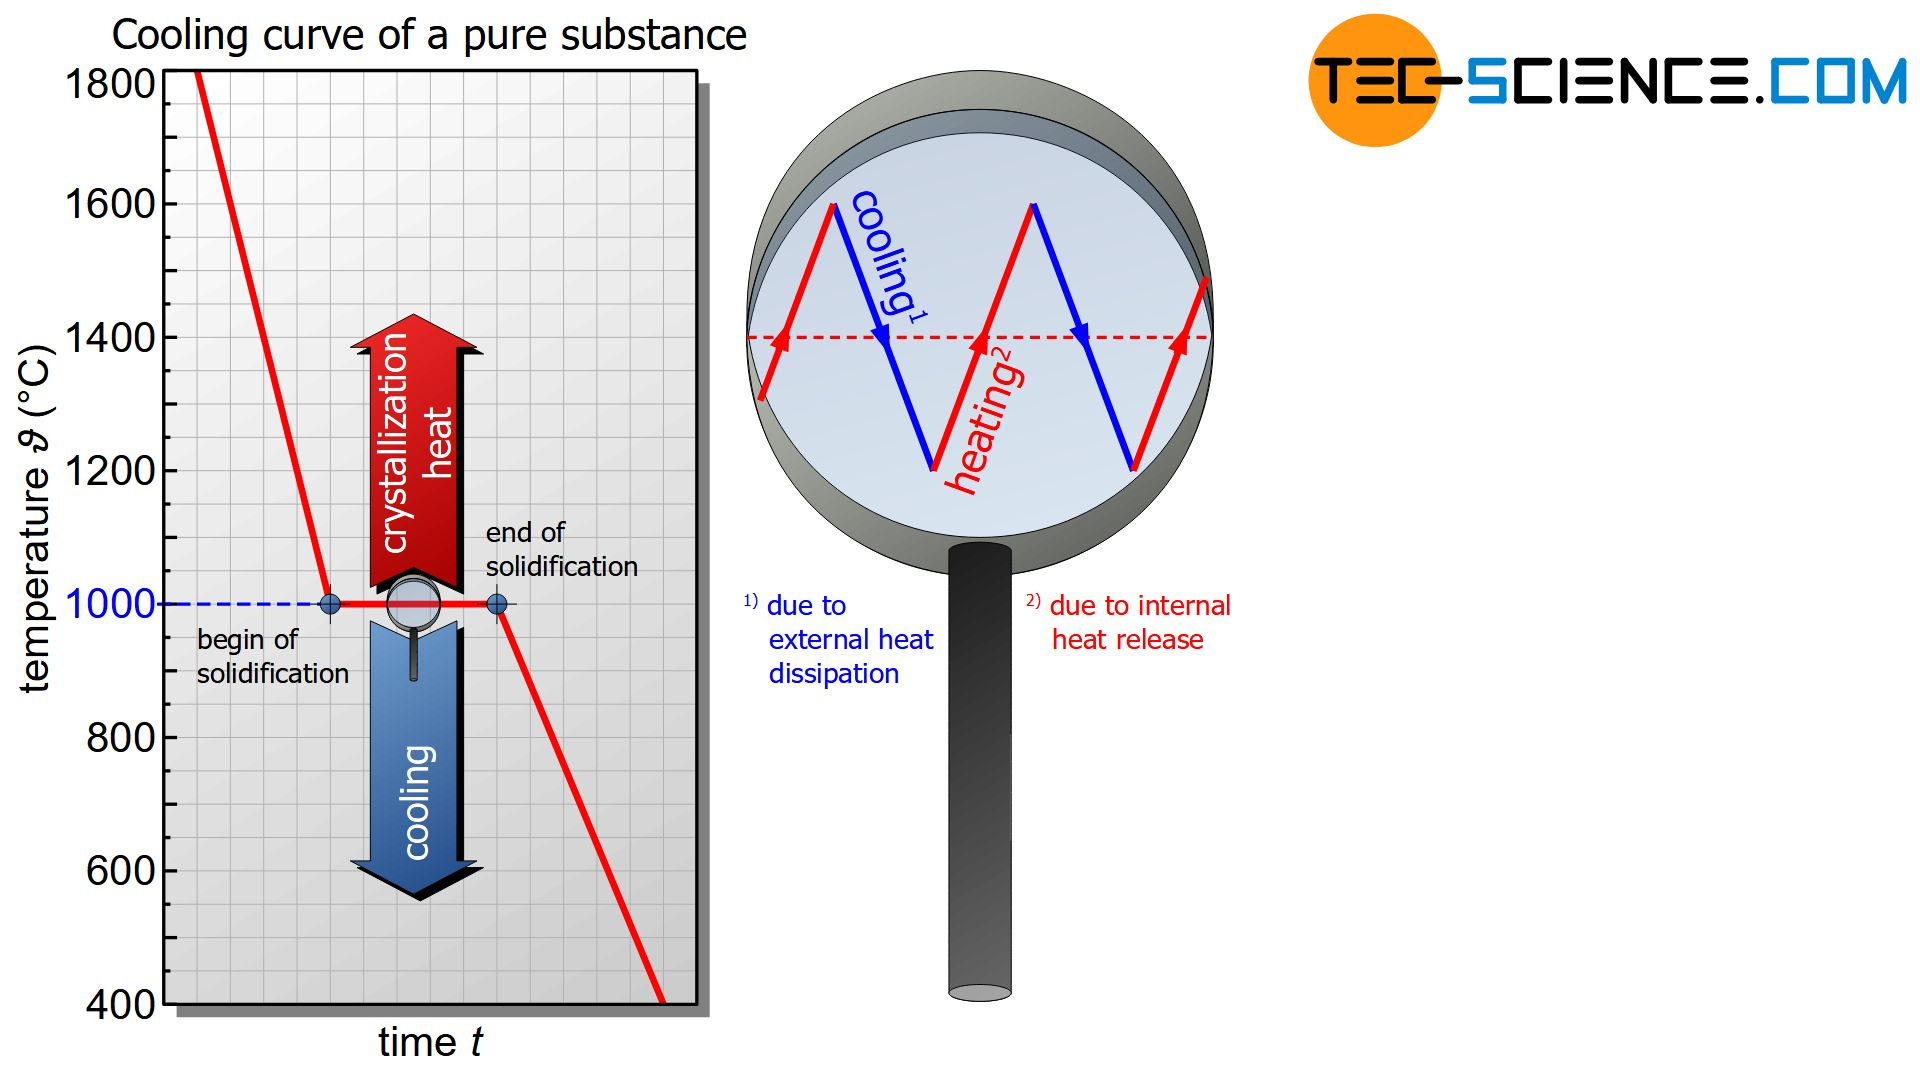 Cooling curve of a pure substance